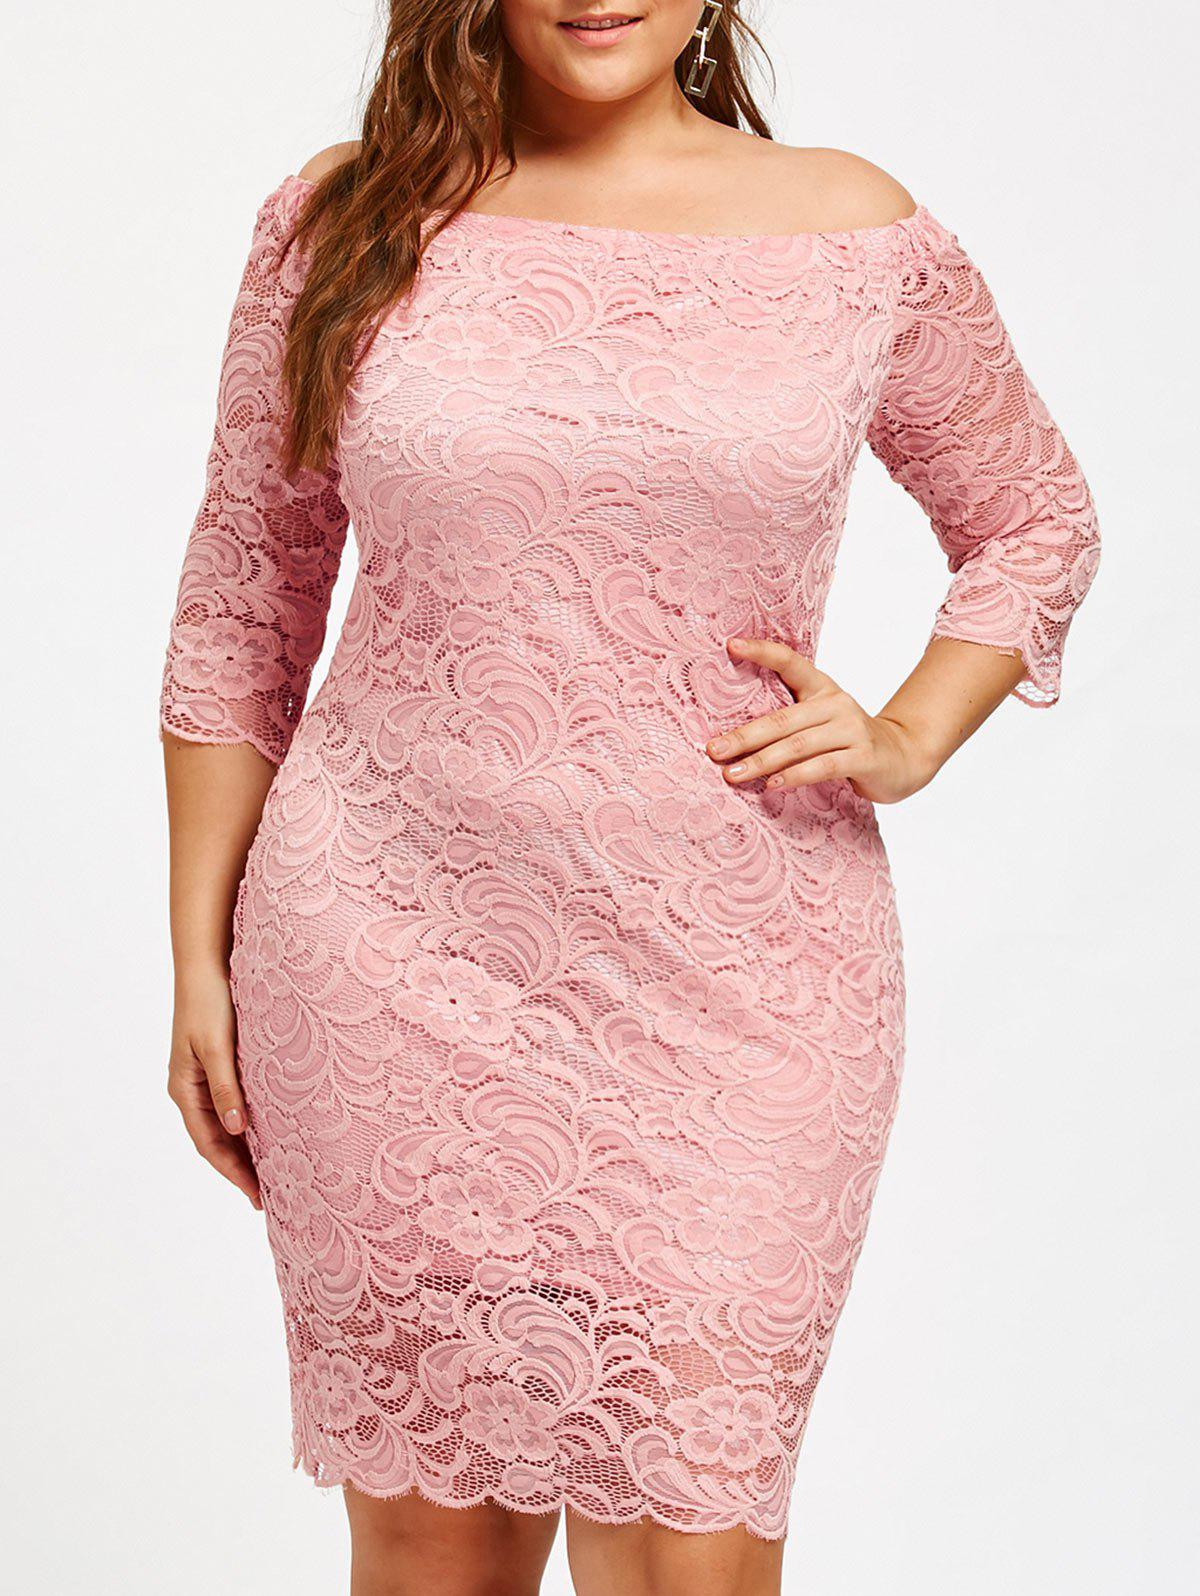 27% OFF] Off The Shoulder Plus Size Lace Dress | Rosegal